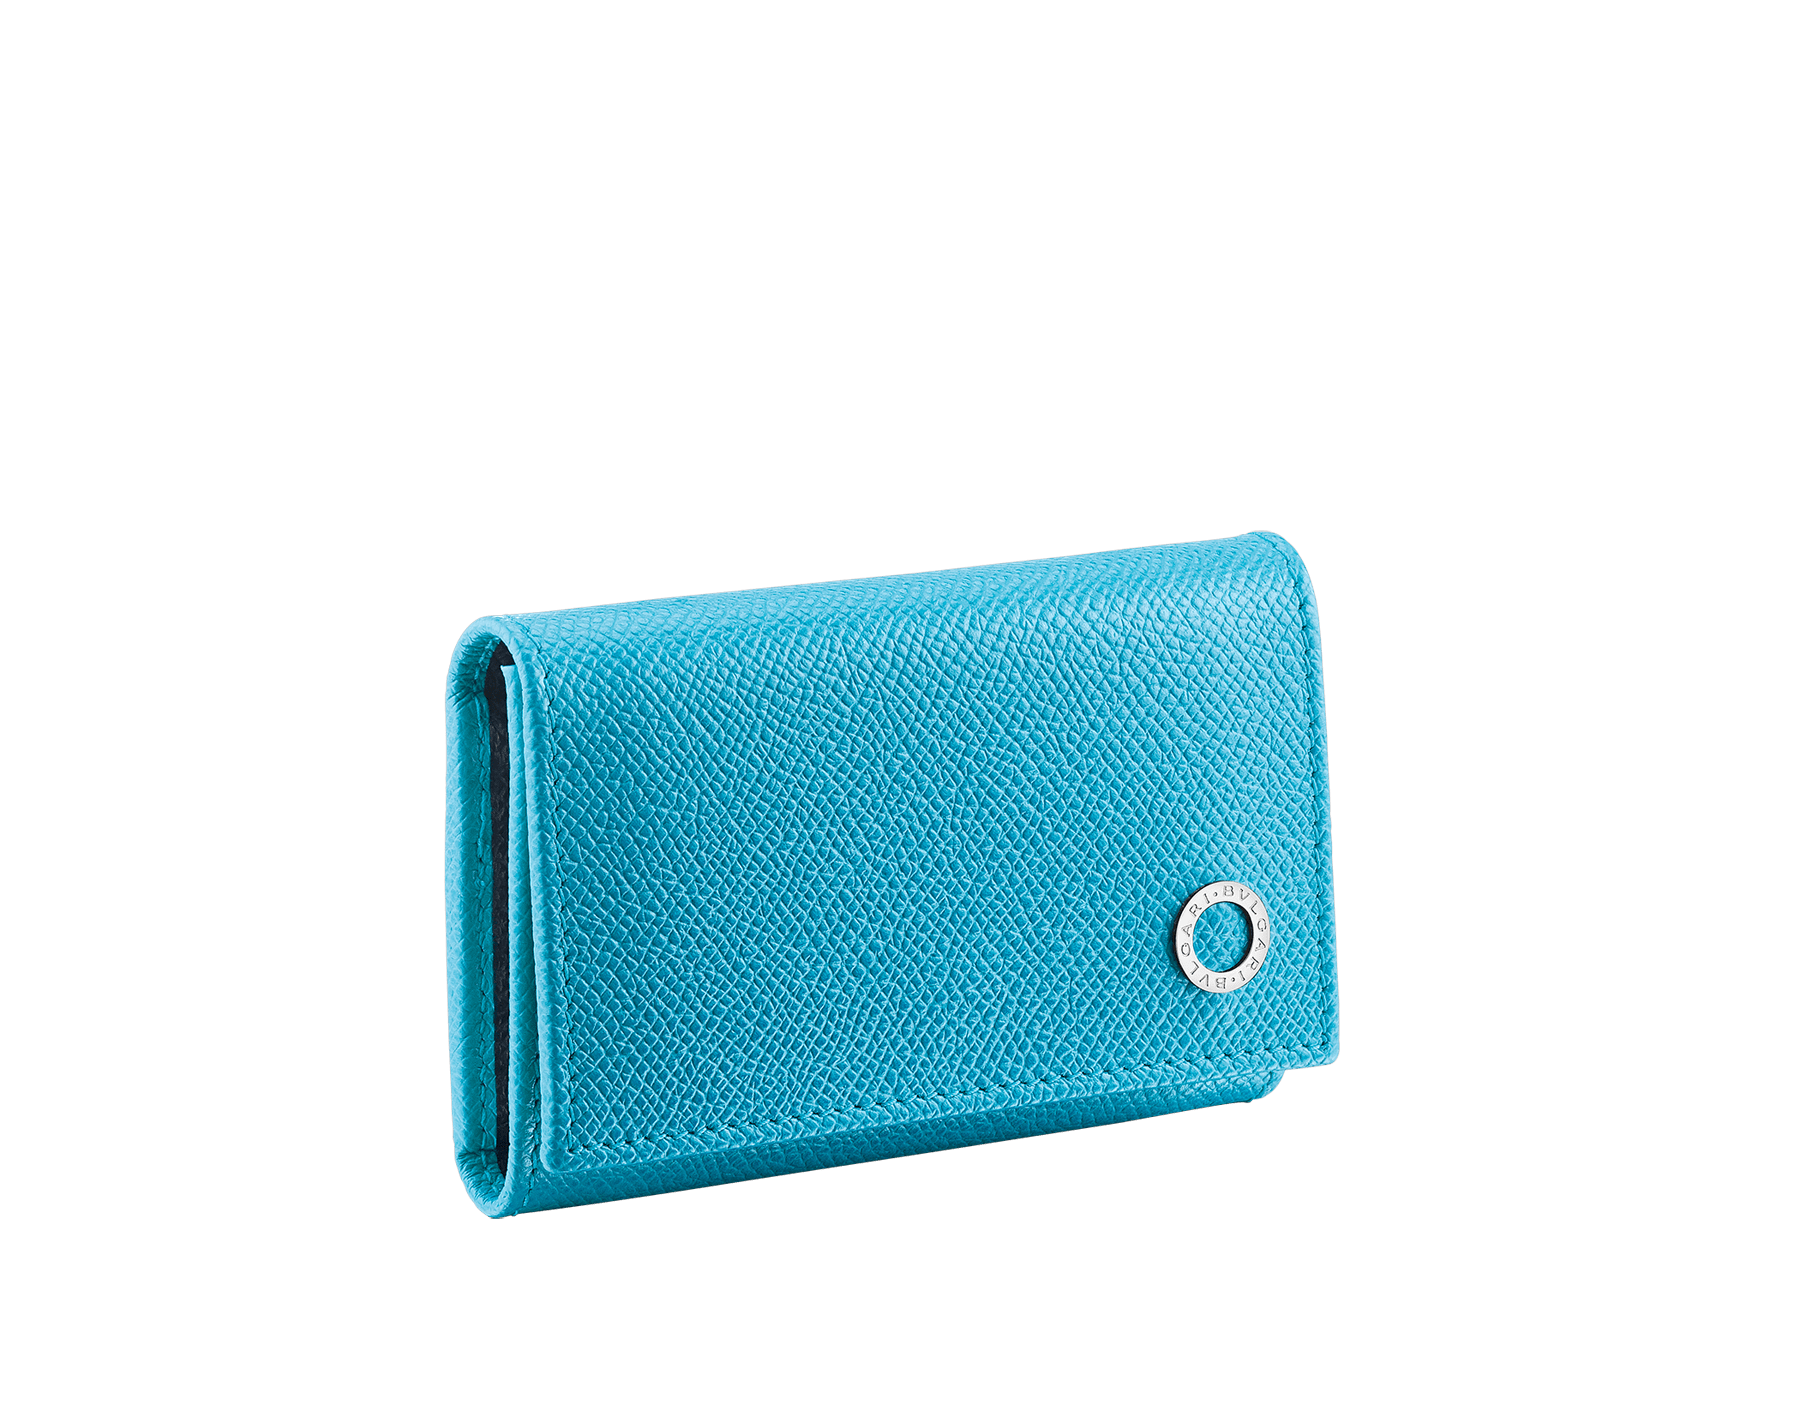 """BVLGARI BVLGARI"" double key holder in capri turquoise and royal sapphire grain calf leather. Detachable car key holder in palladium plated brass. BBM-DOUBLE-KEYHOLDb image 1"